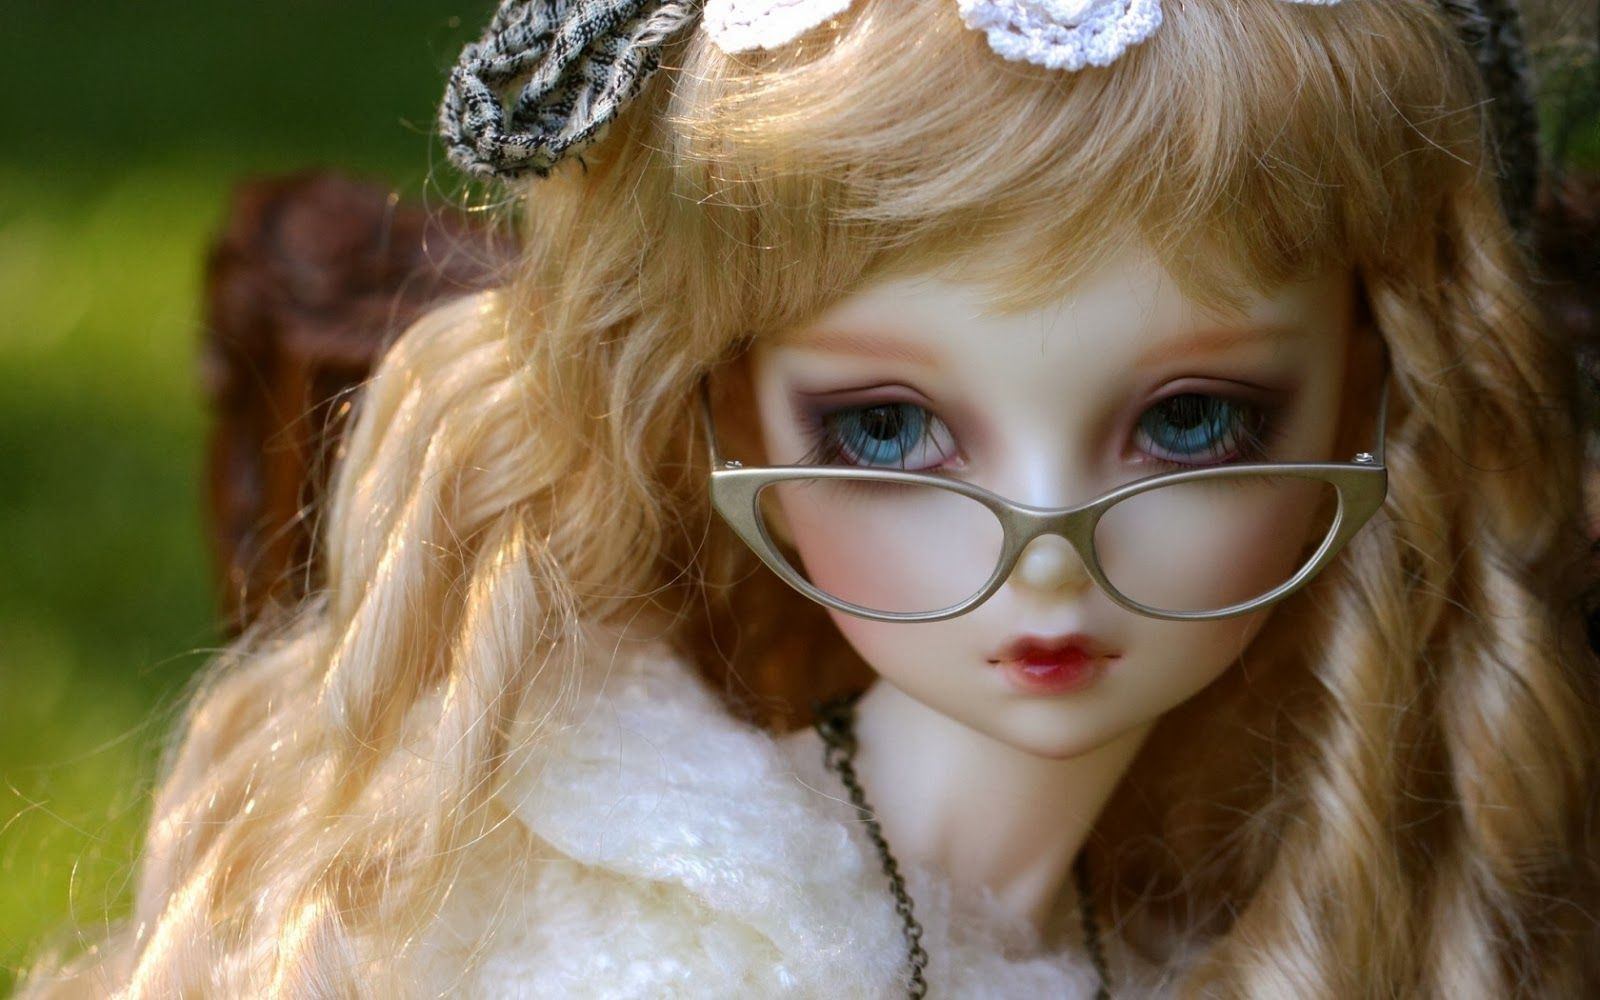 Top 80 Best Beautiful Cute Barbie Doll Hd Wallpapers Images Pictures Latest Collection Beautiful Dolls Barbies Pics Beautiful Barbie Dolls